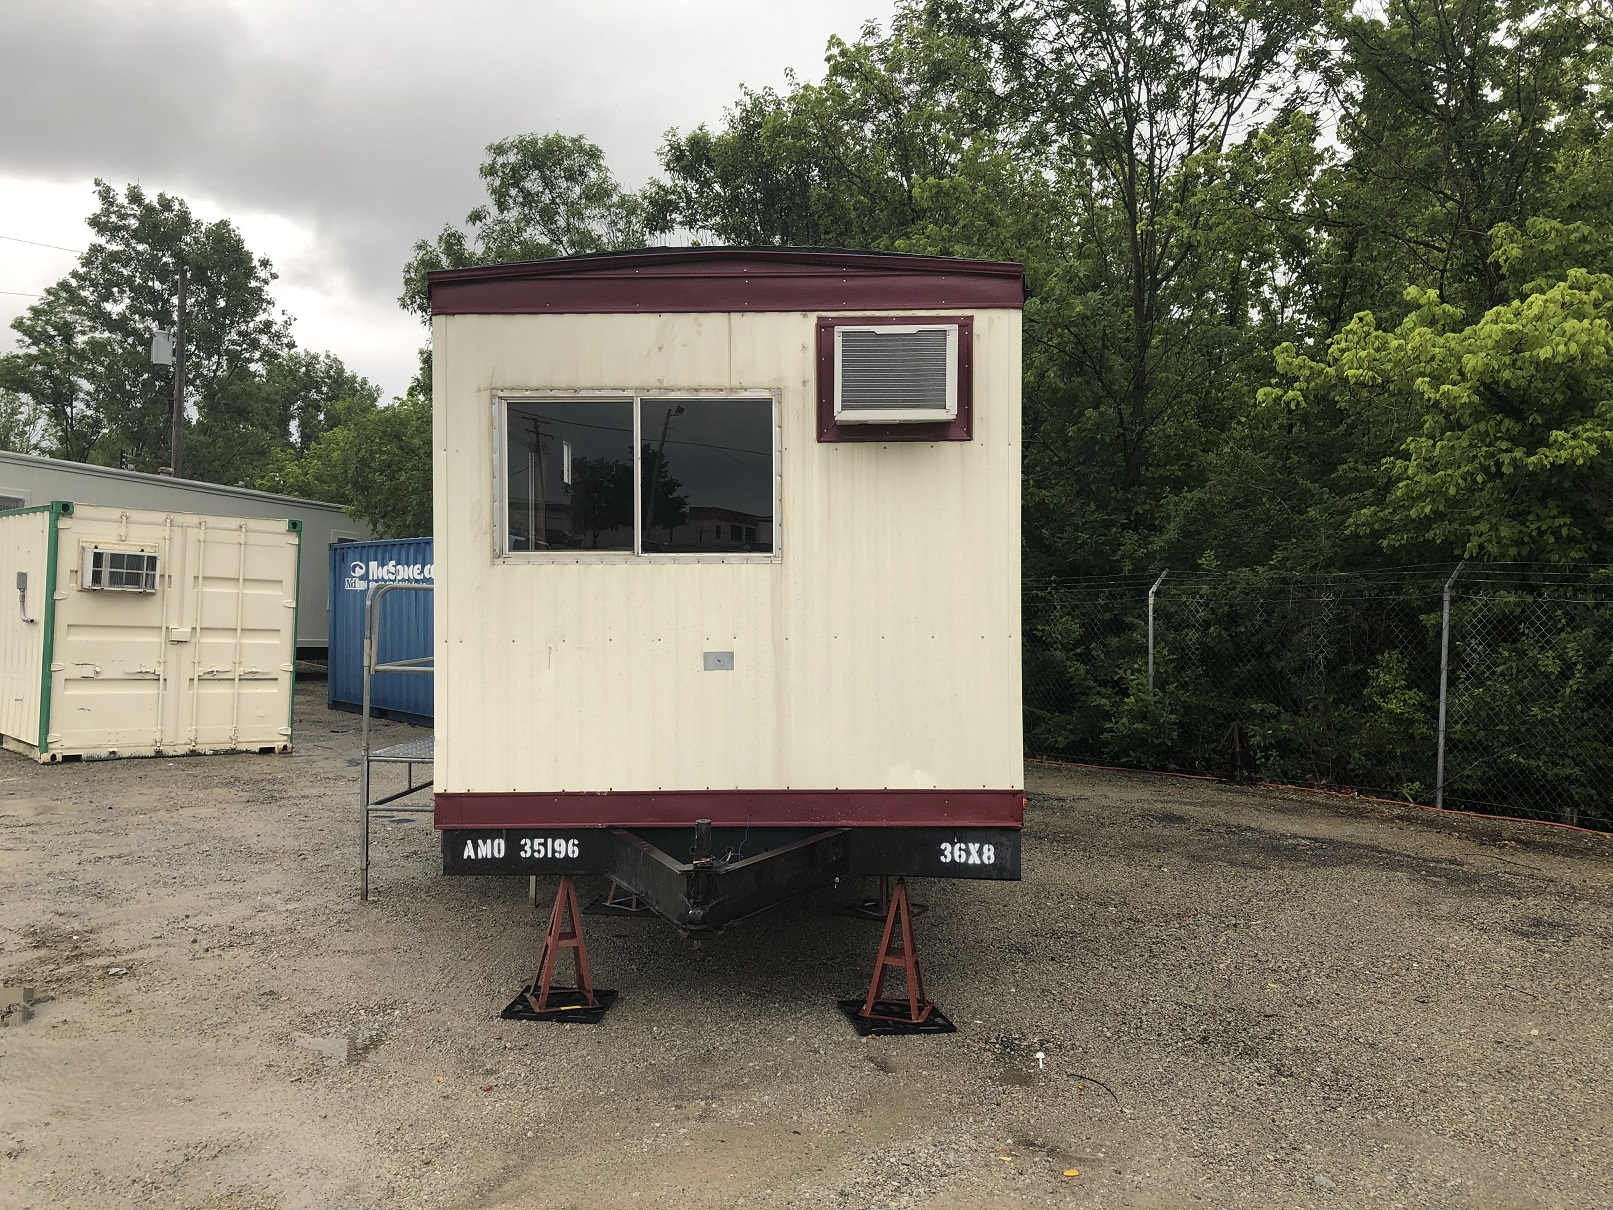 36'x8' used mobile office for sale in Louisville, KY - AMO-351961-9